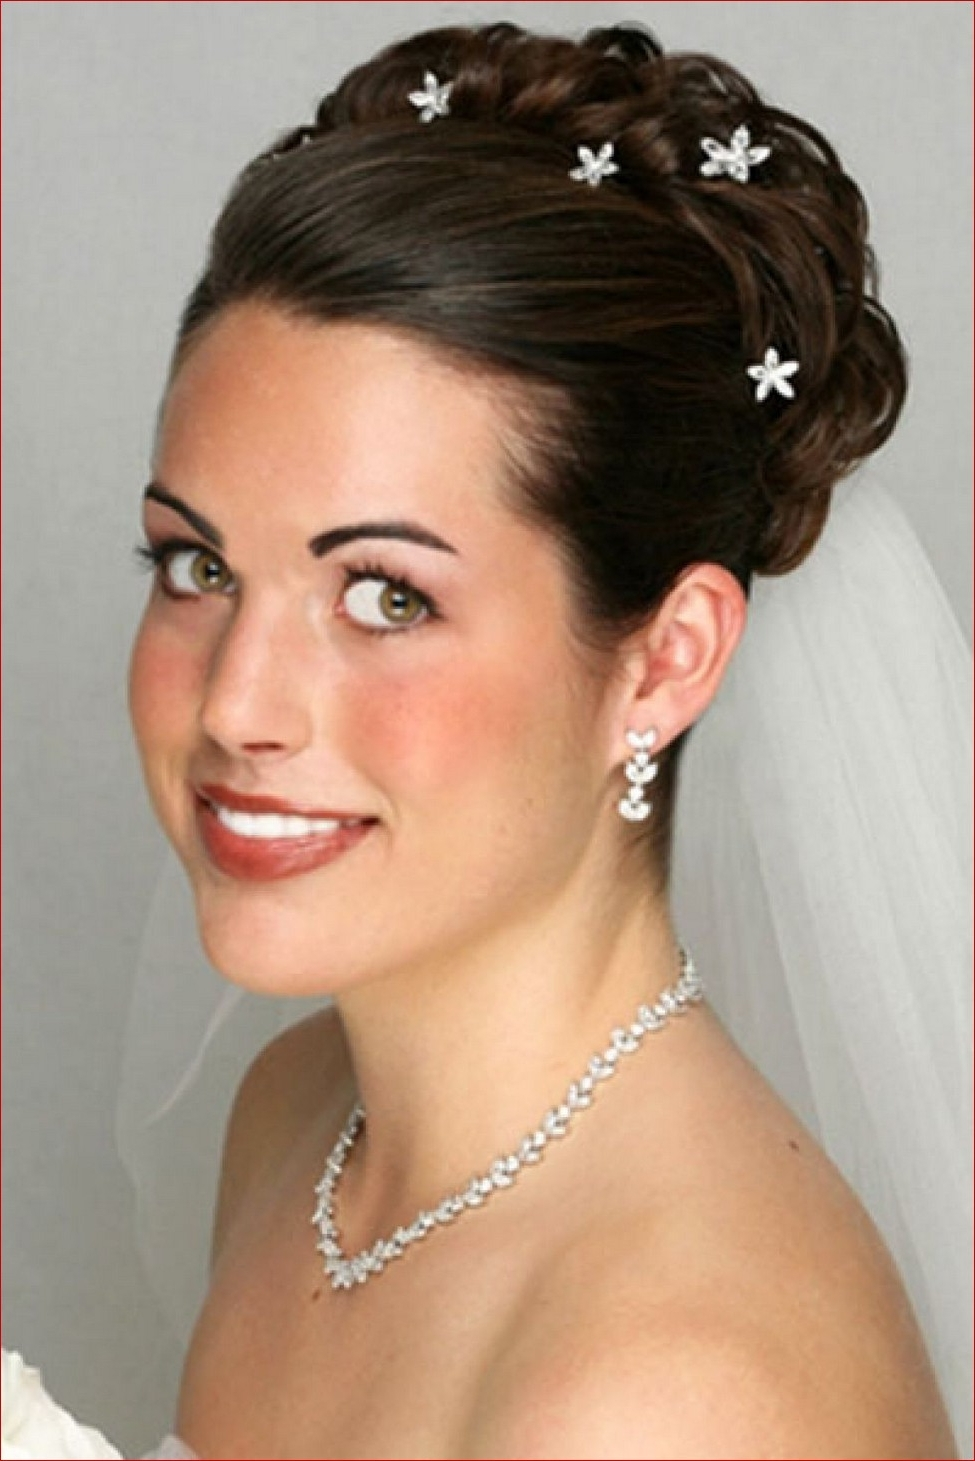 Bridal Hairstyles For Medium Hair – Hairstyle For Women & Man Within Wedding Updos Shoulder Length Hairstyles (View 13 of 15)